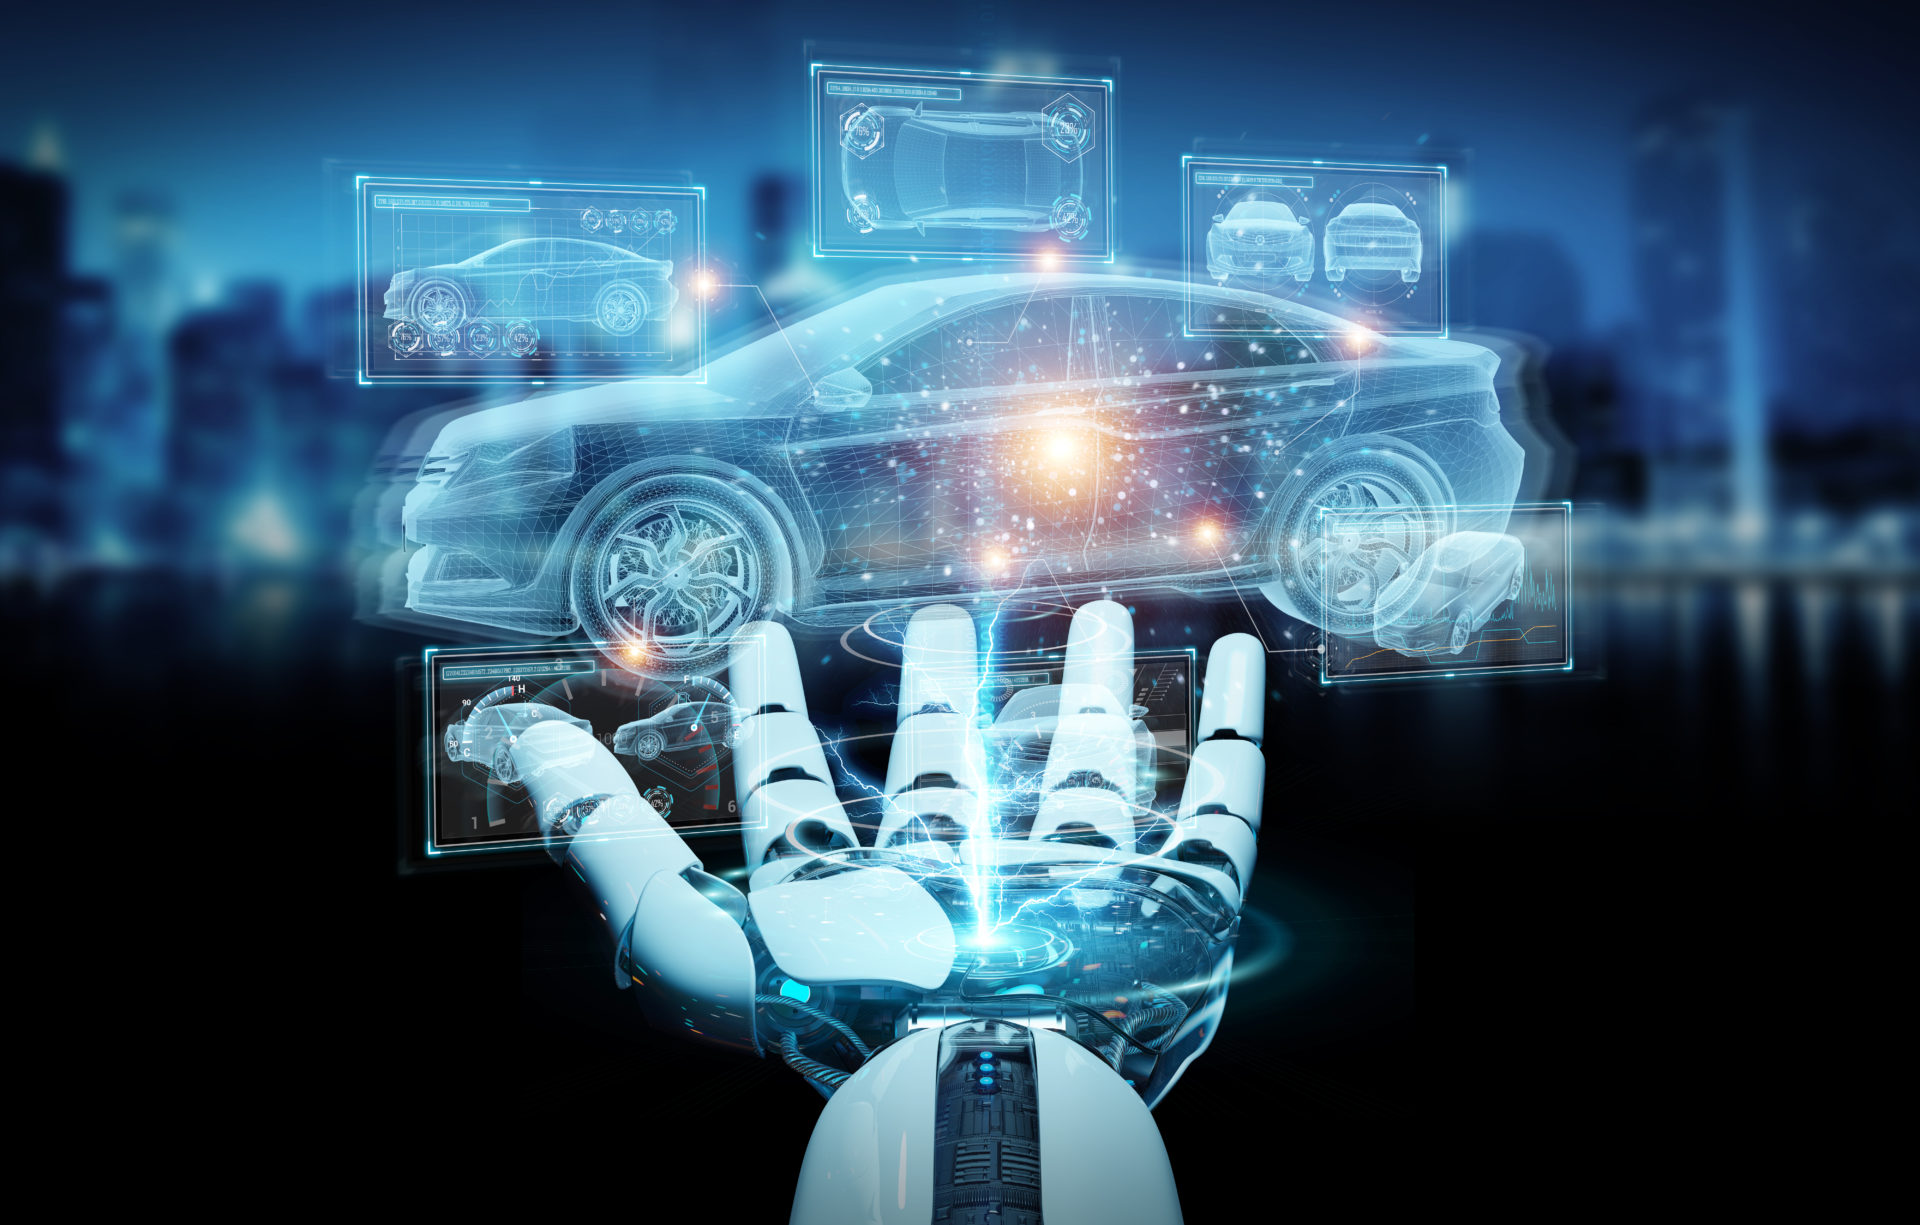 CHEETAH is the Leader in Autonomous Vehicle Solutions